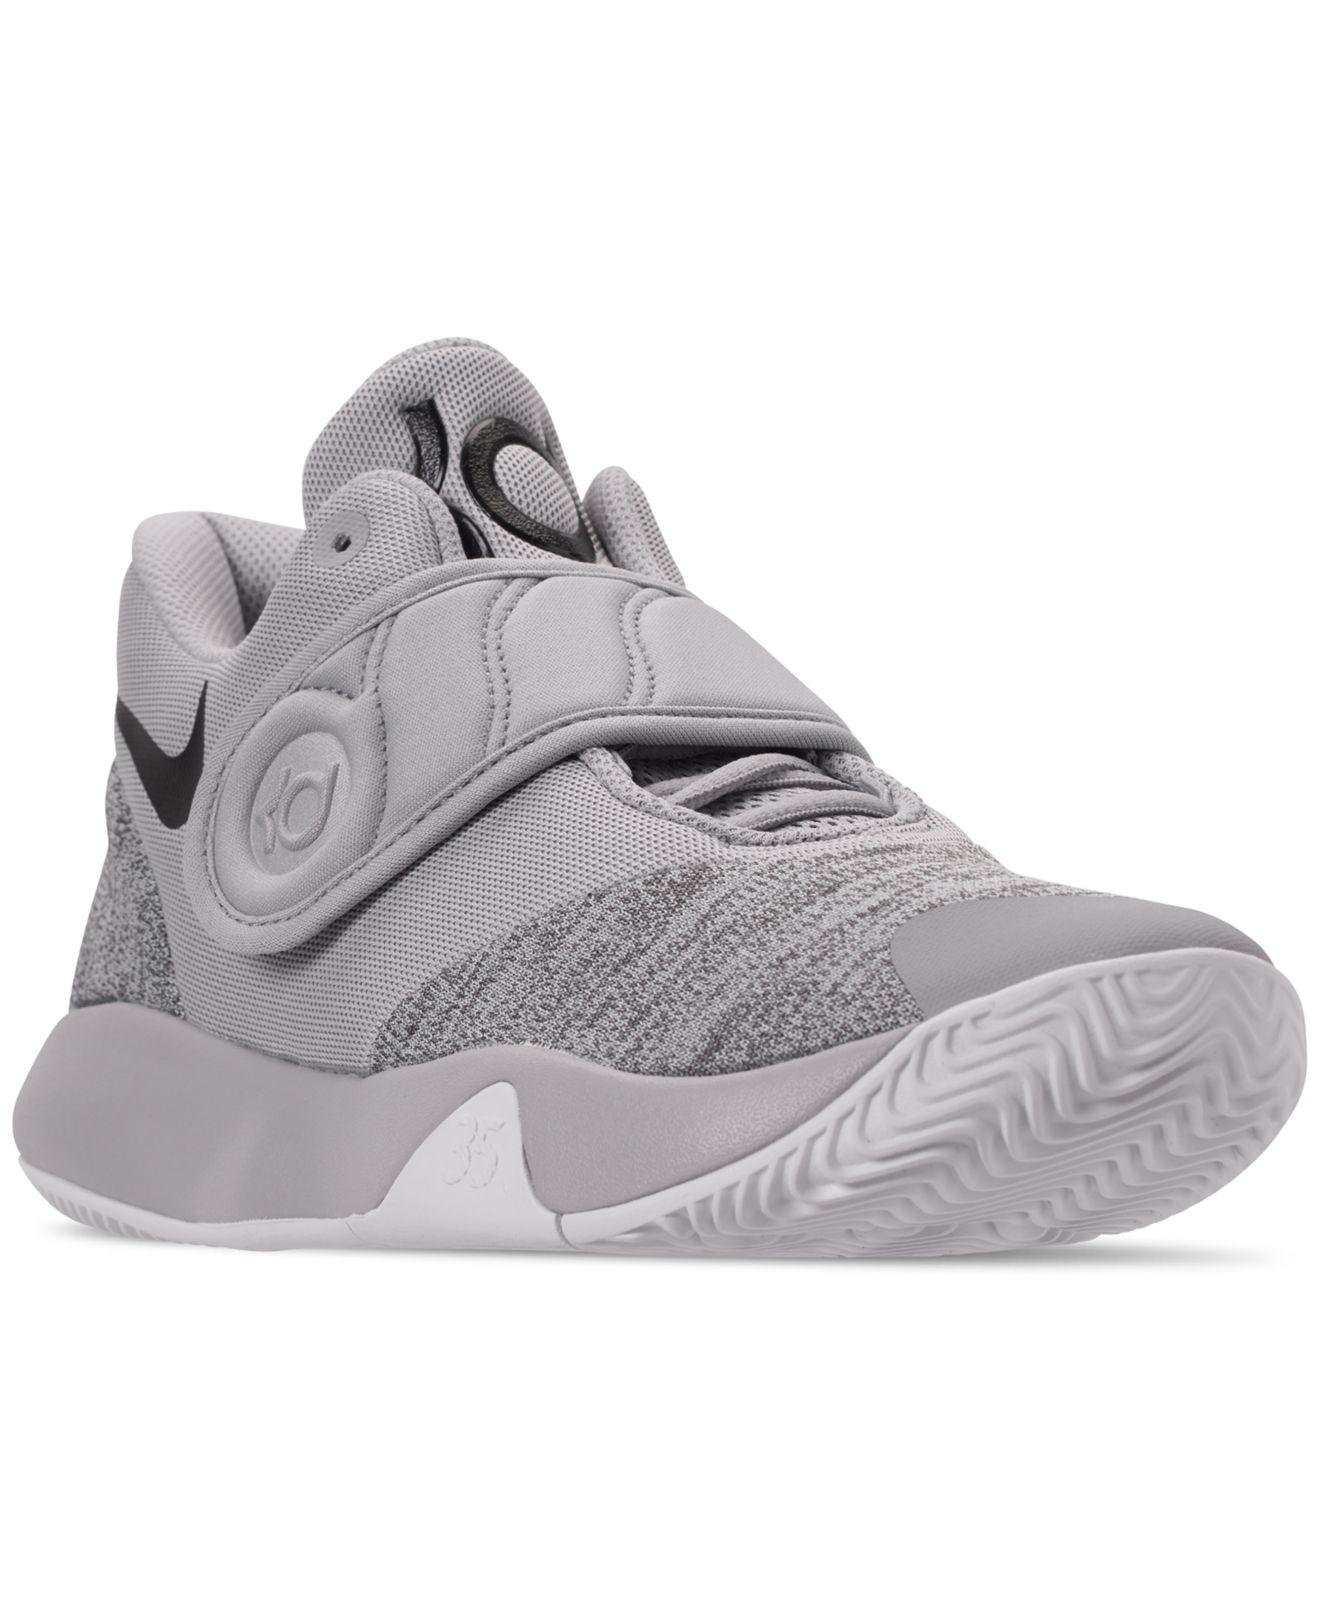 df7dcf3a3401 Nike Kd Trey 5 Vi Basketball Sneakers From Finish Line in Gray for ...